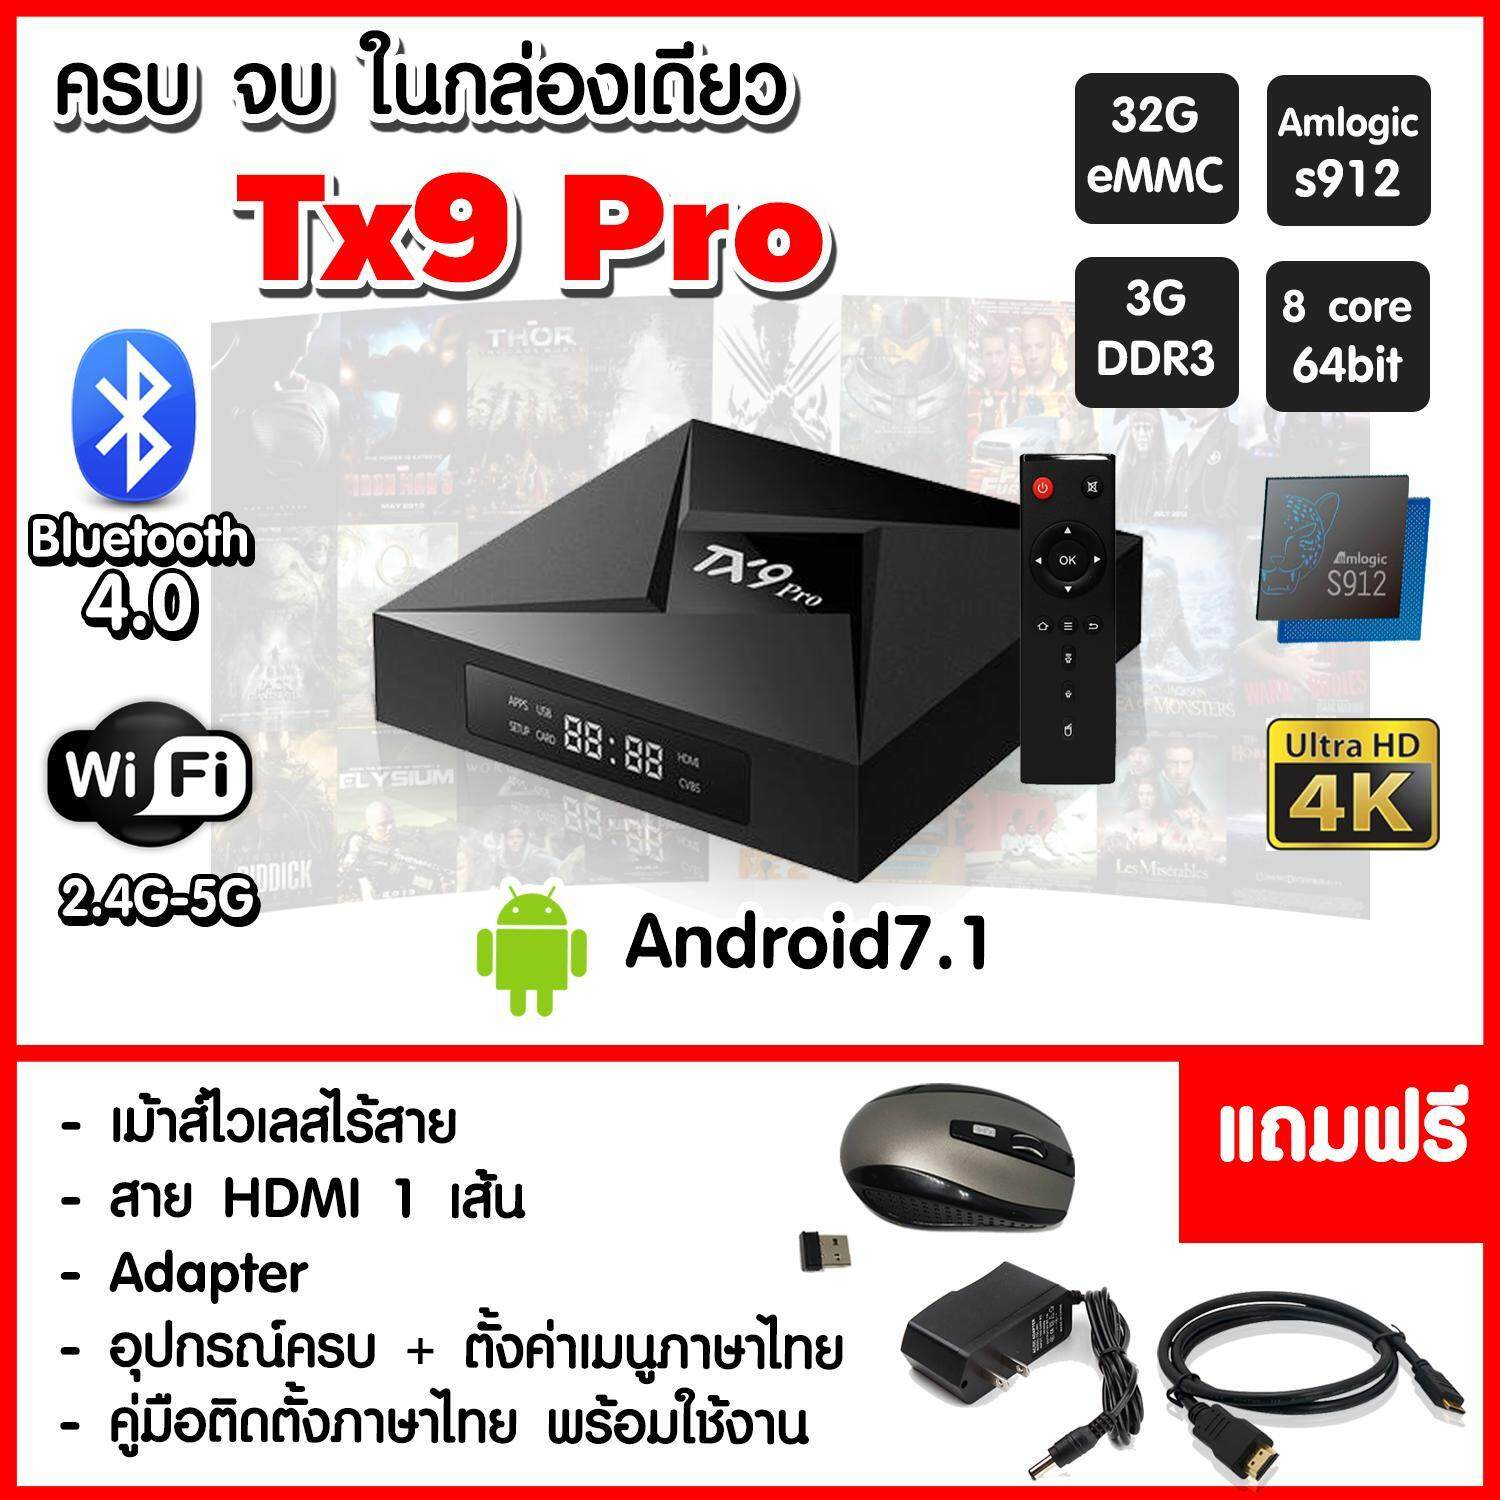 การใช้งาน  พิจิตร ++ฟรี เม้าส์ ไร้สาย/ เร็วแรงทะลุจอ  3GB Ram  32GB Rom Amlogic S912 octa core Android 7.1 tv box bulit in 2.4G+5G+Bluetooth dual wifi 4K player